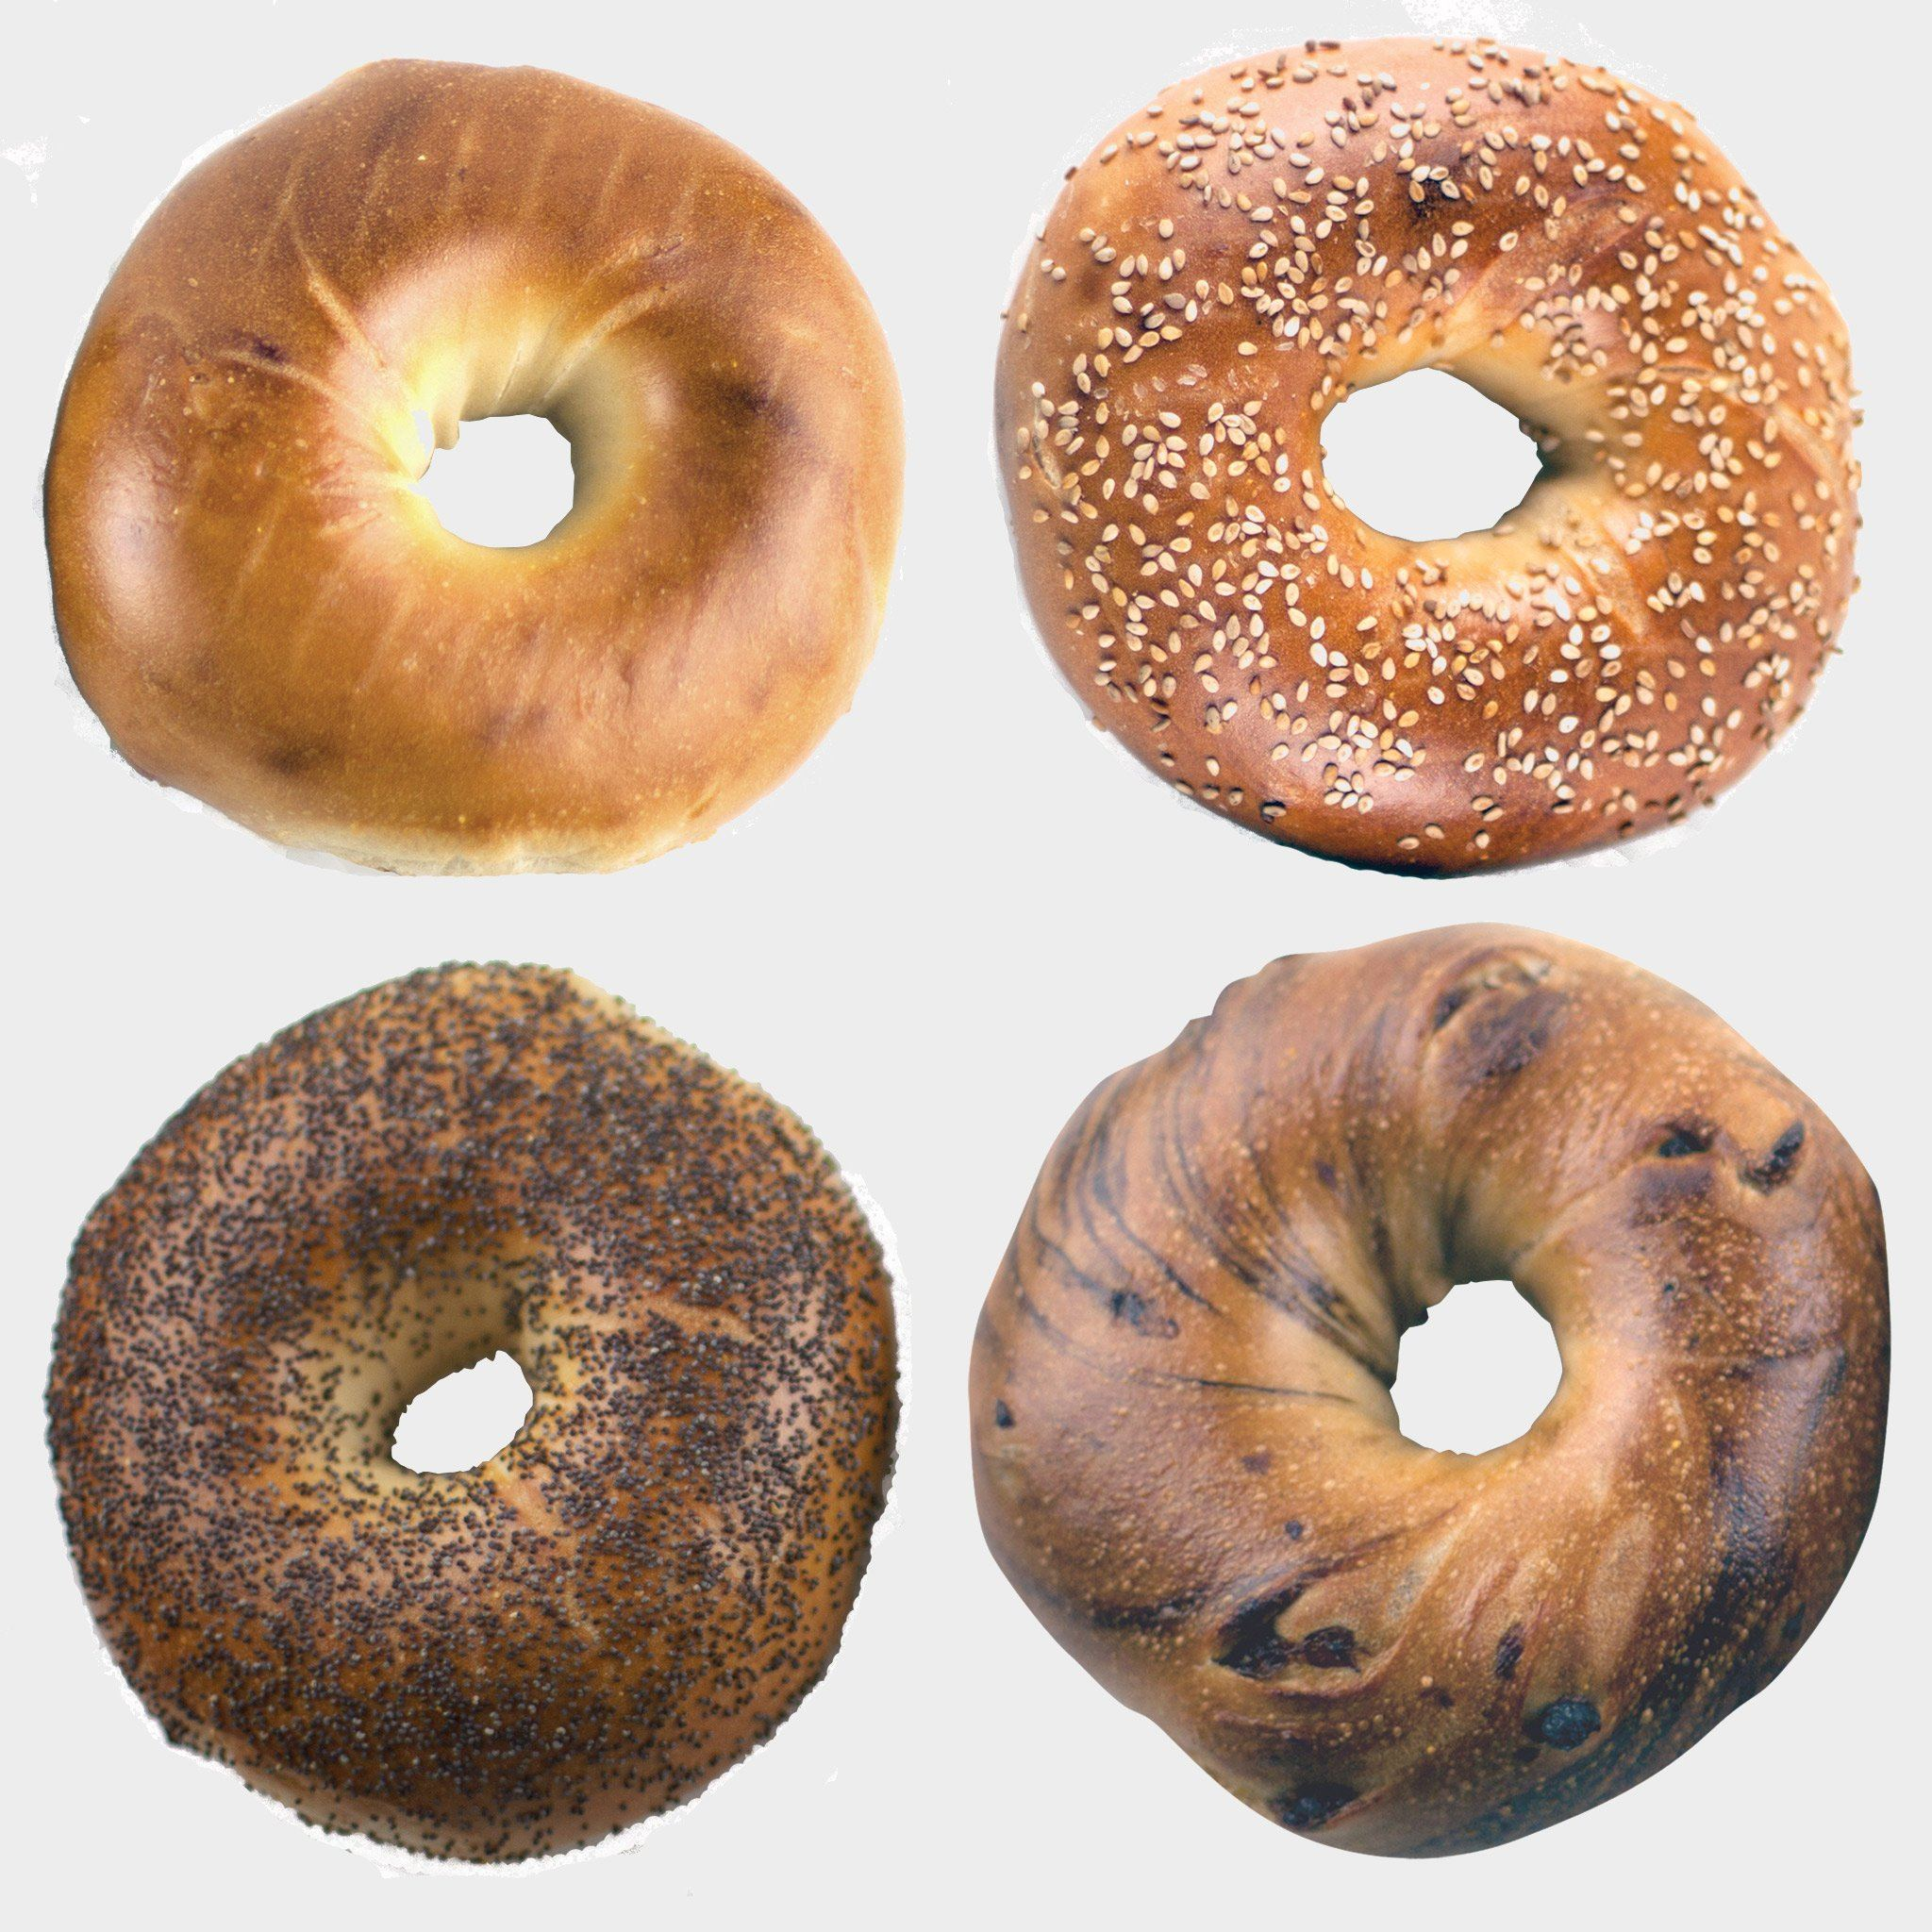 Plain and sesame bagels